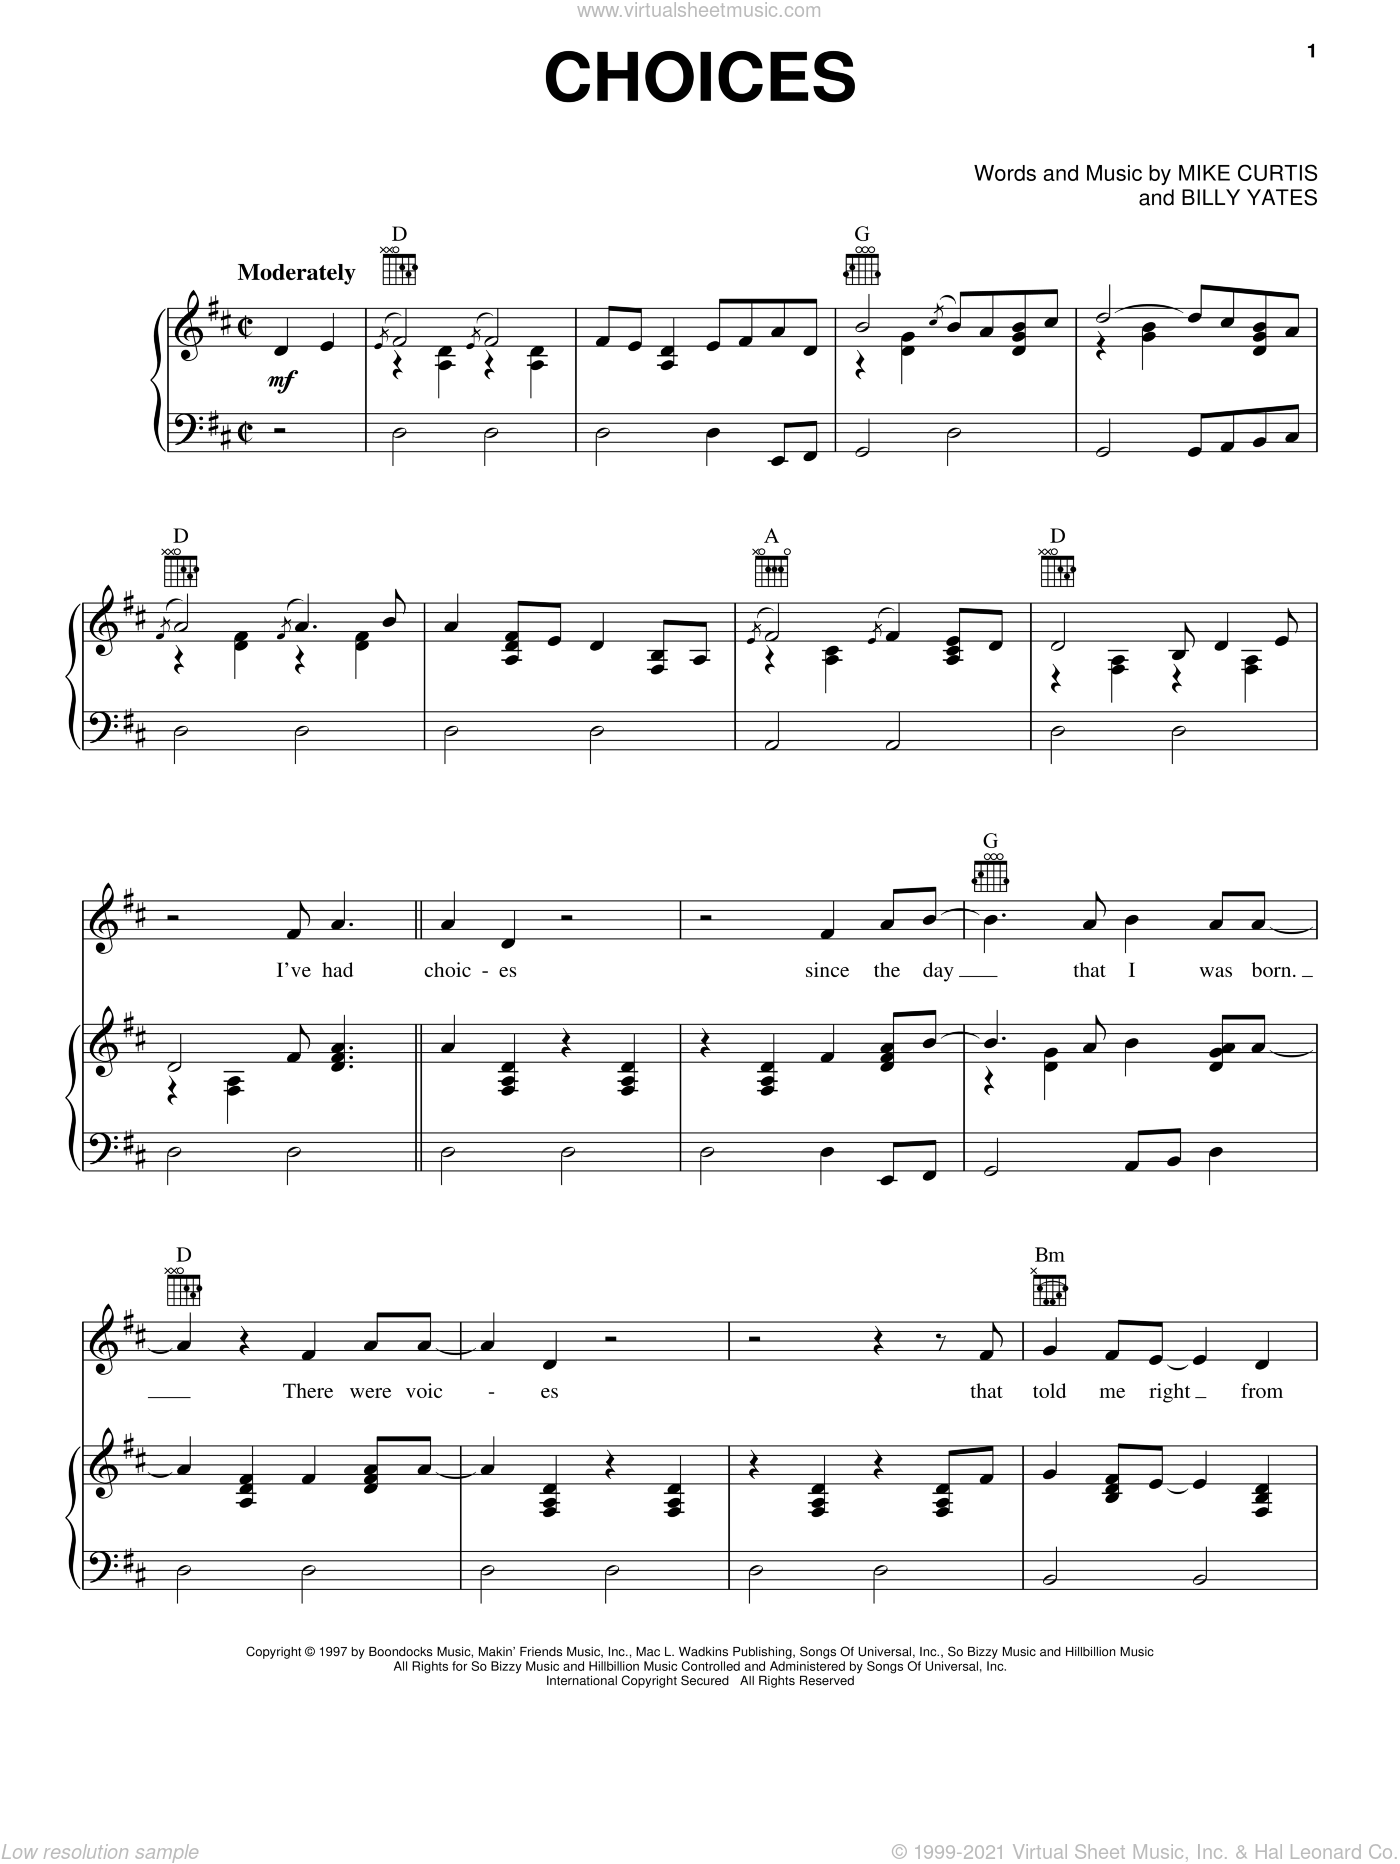 Choices sheet music for voice, piano or guitar by George Jones, Billy Yates and Mike Curtis, intermediate skill level